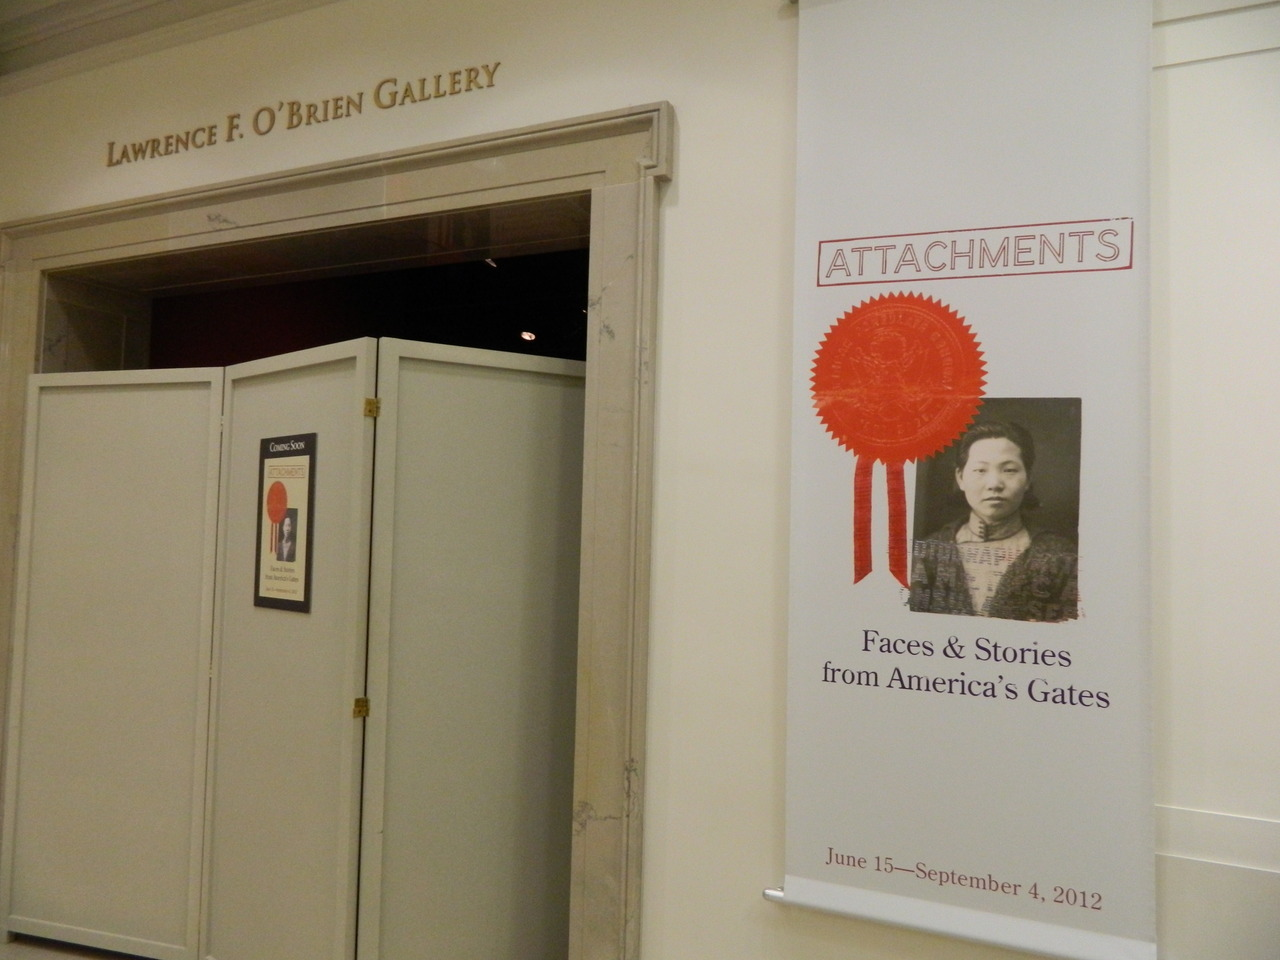 "Our new exhibit opens June 15! Attachments: Faces and Stories from America's Gates draws from the millions of immigration case files in the National Archives to tell a few of these stories from the 1880s through World War II. Come and explore the attachment of immigrants to family and community, and the attachment of government organizations to laws that reflected certain beliefs about immigrants and citizenship. There are dramatic tales of joy and disappointment, opportunity and discrimination, deceit and honesty. ""Attachments"" will be on view through September 4 in the National Archives. Admission is free!"